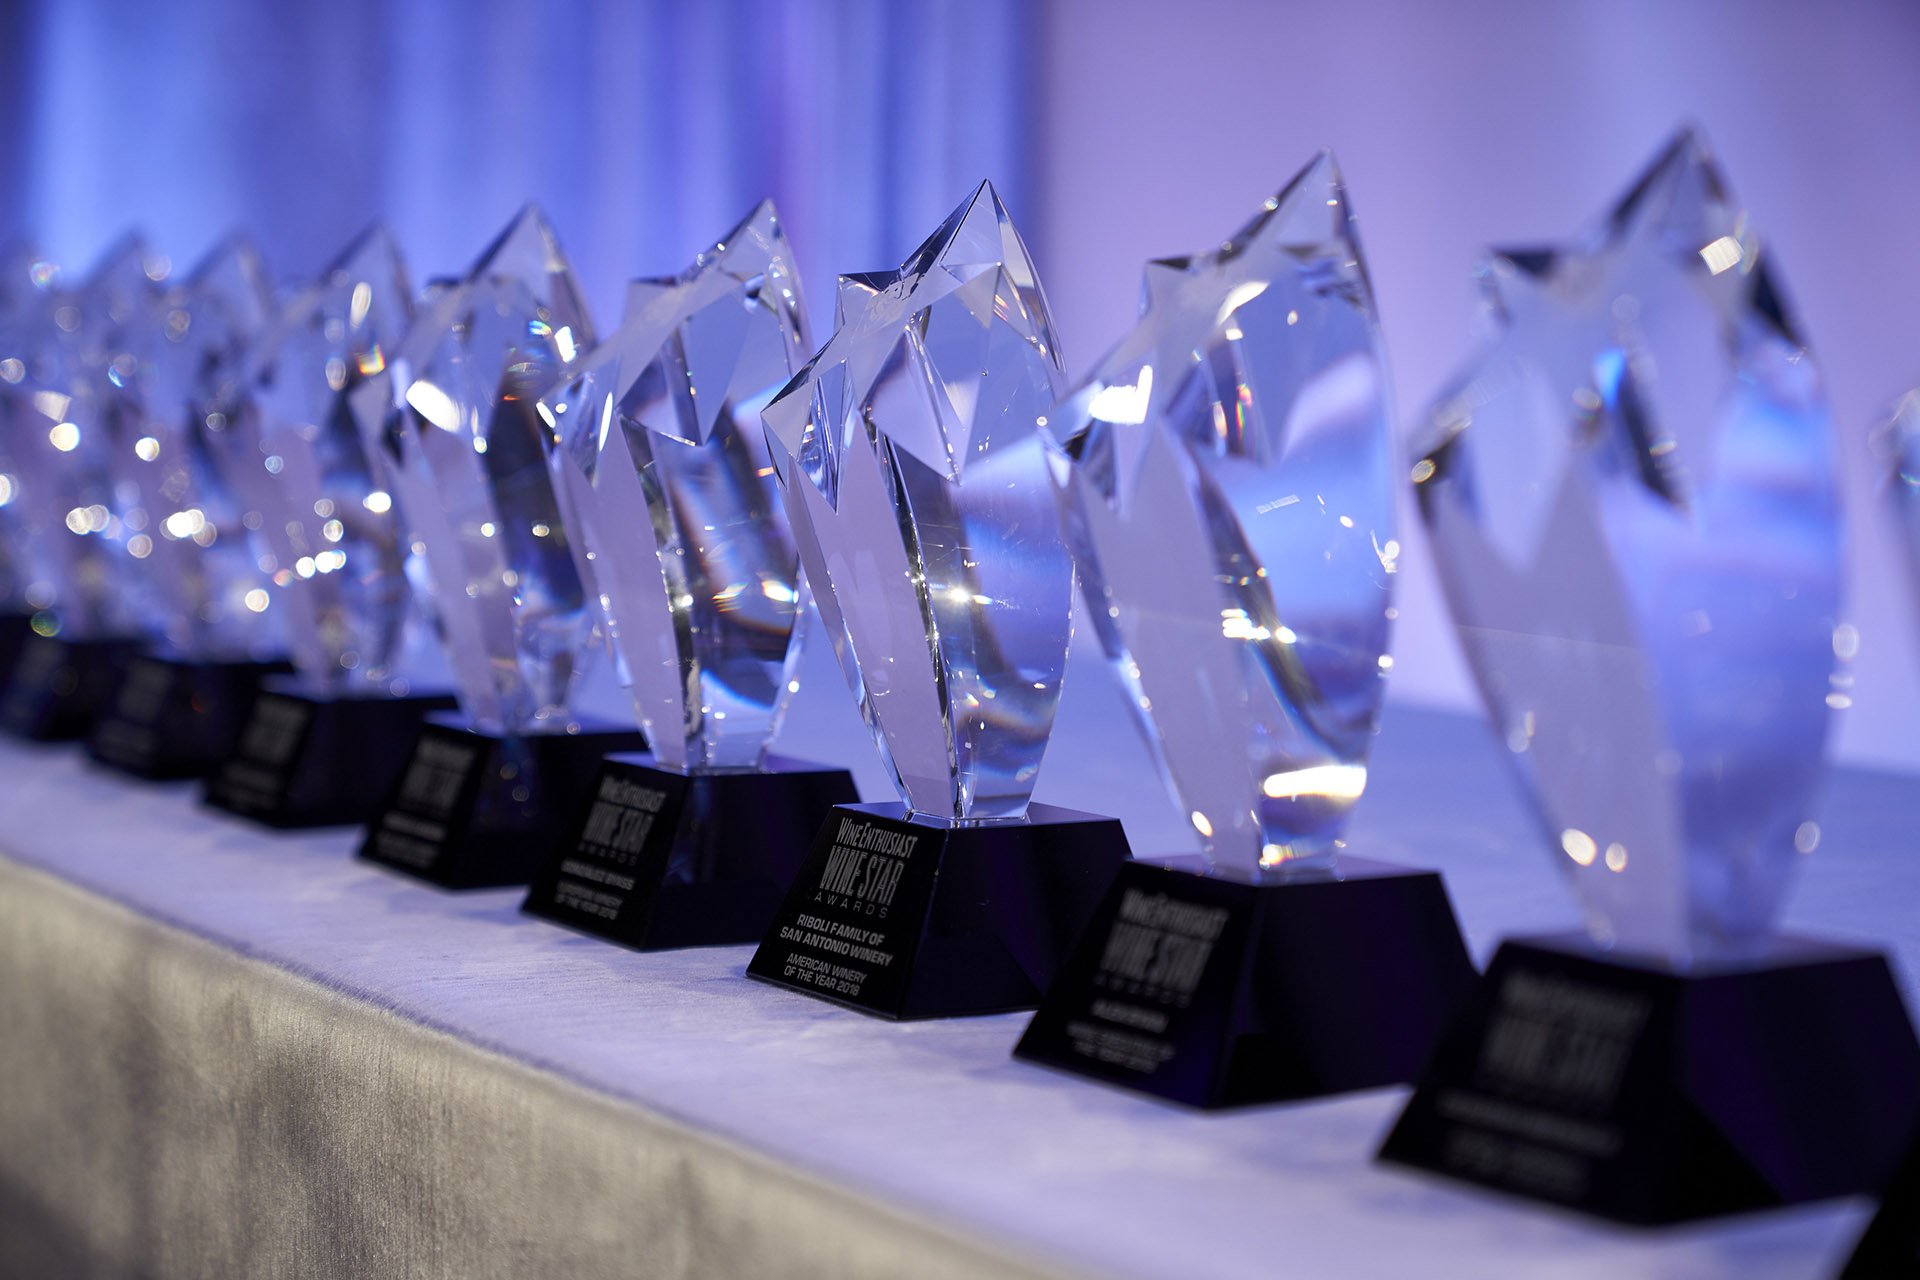 Cascade of Trophies and Awards in the hotel industry